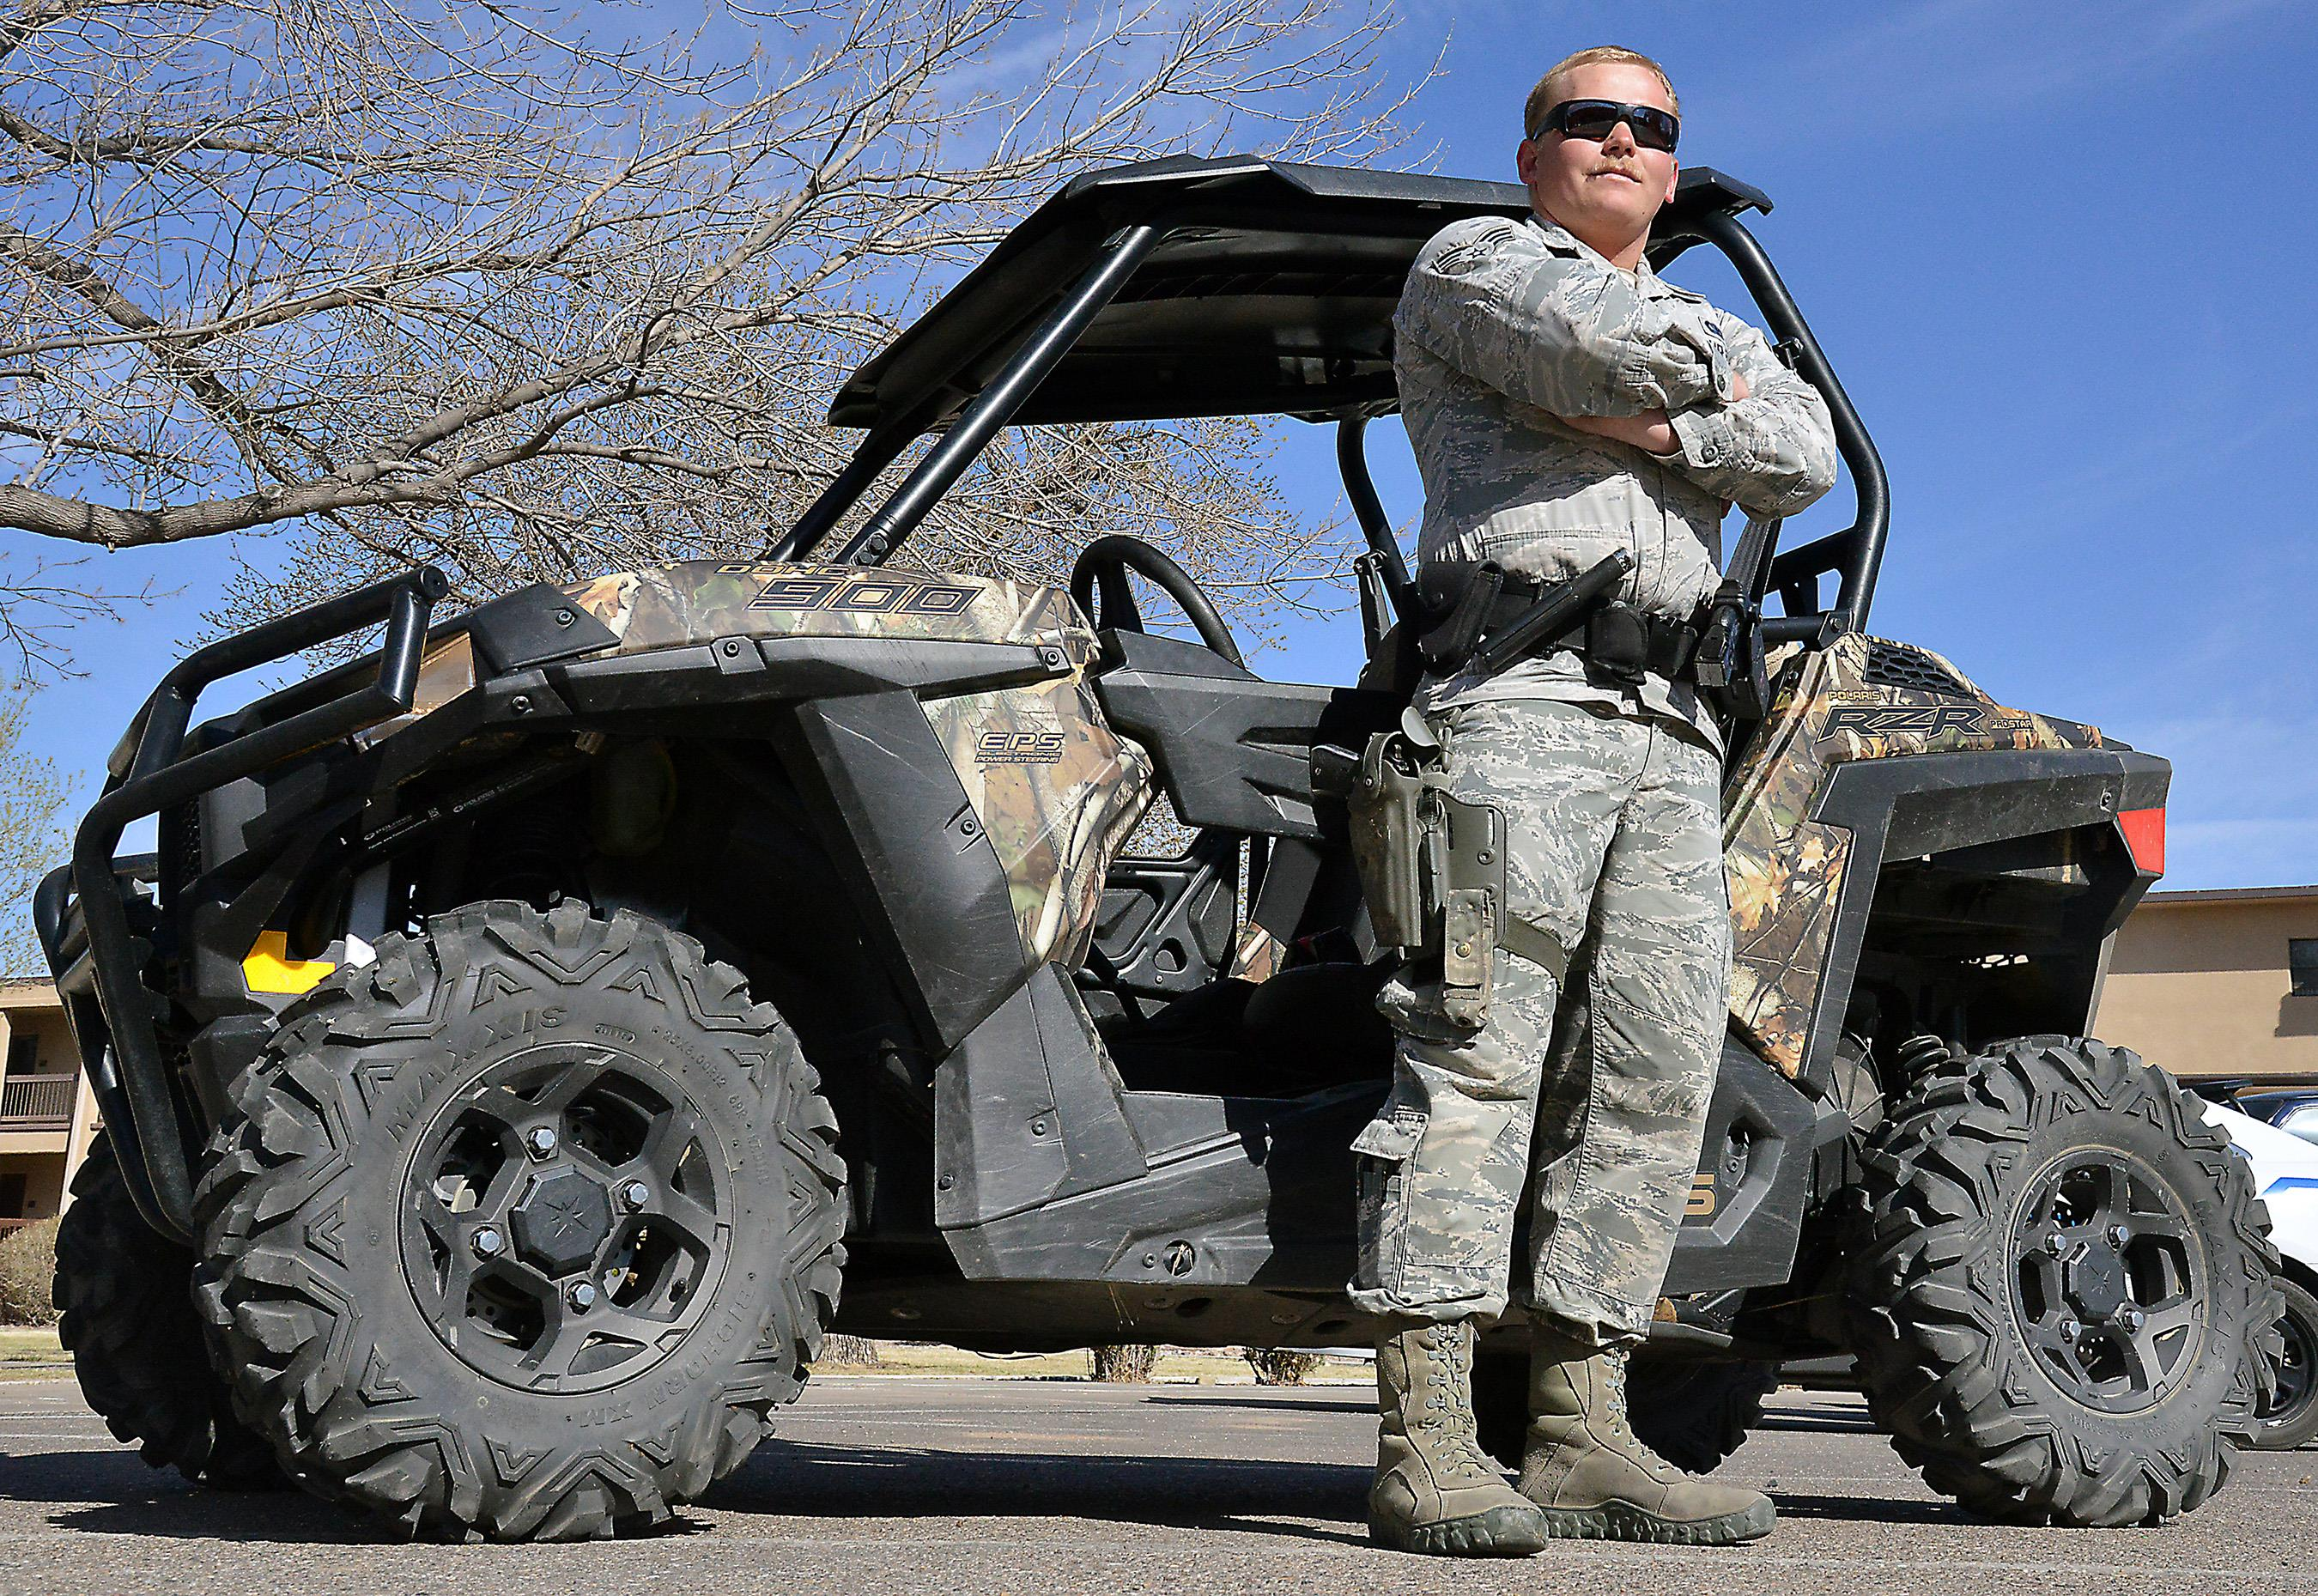 Unique vehicles aid Security Forces in patroling base > Kirtland Air ...